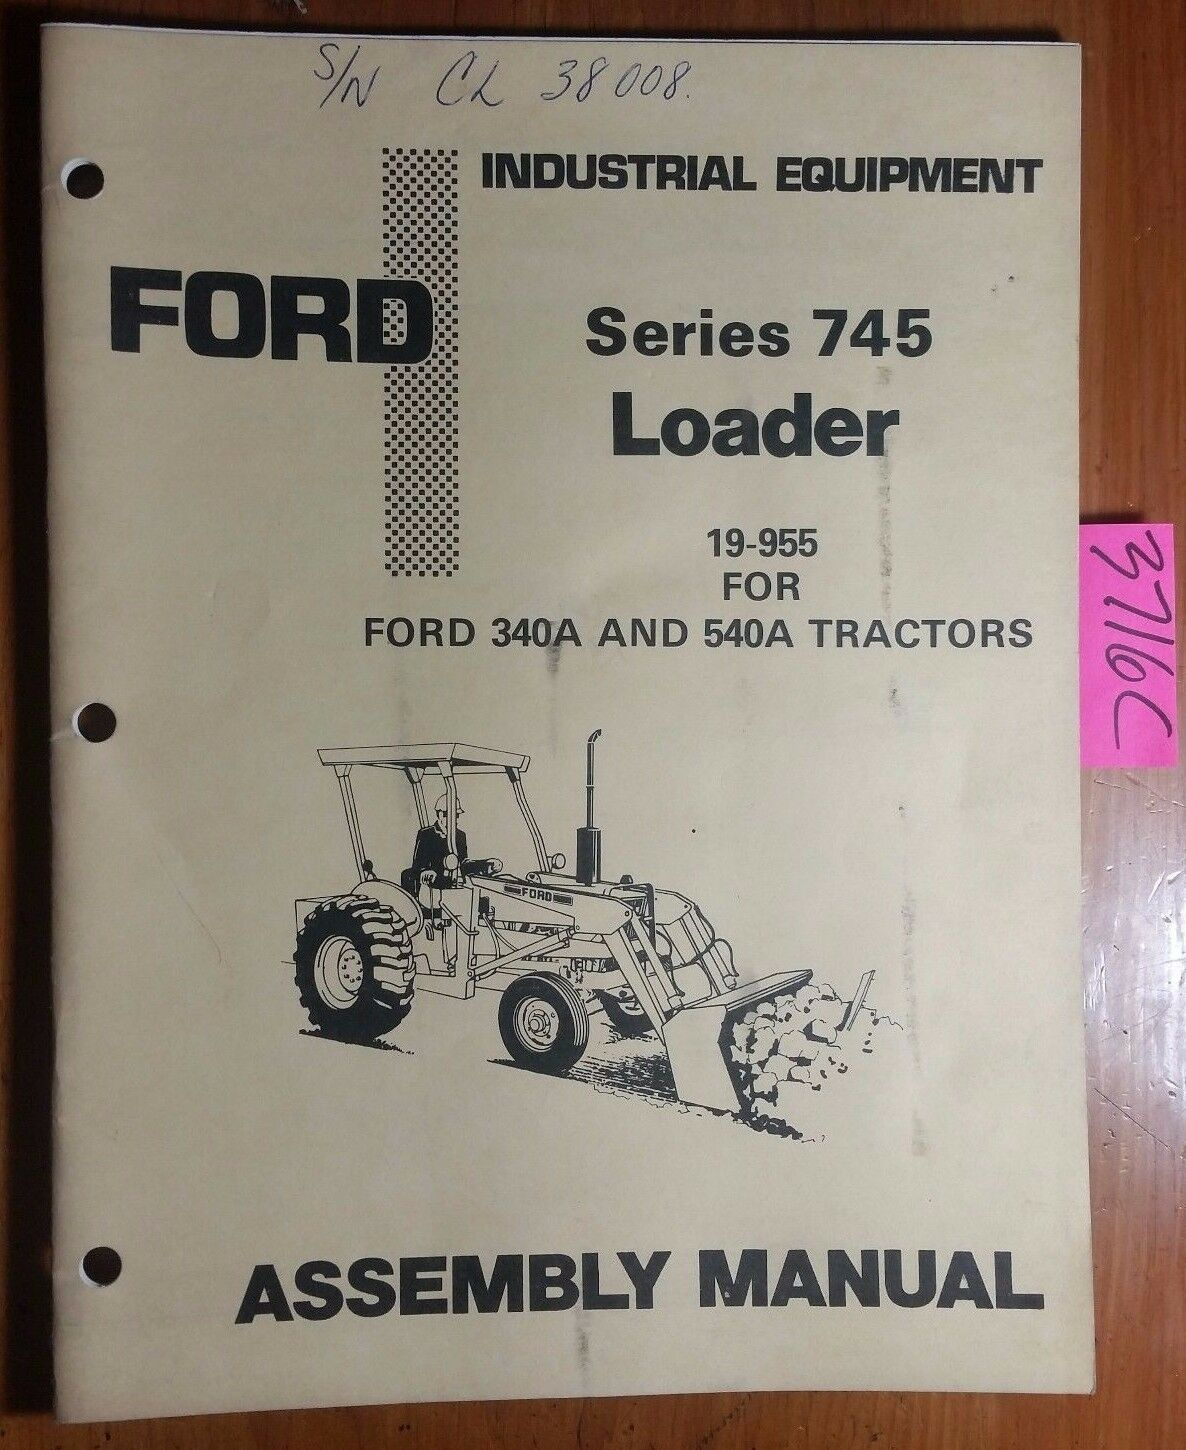 ford series 745 loader 19 955 for 340a 540a tractors assembly manual rh ebay com Simple Key Loader Manual Cat 950 Loader Manual